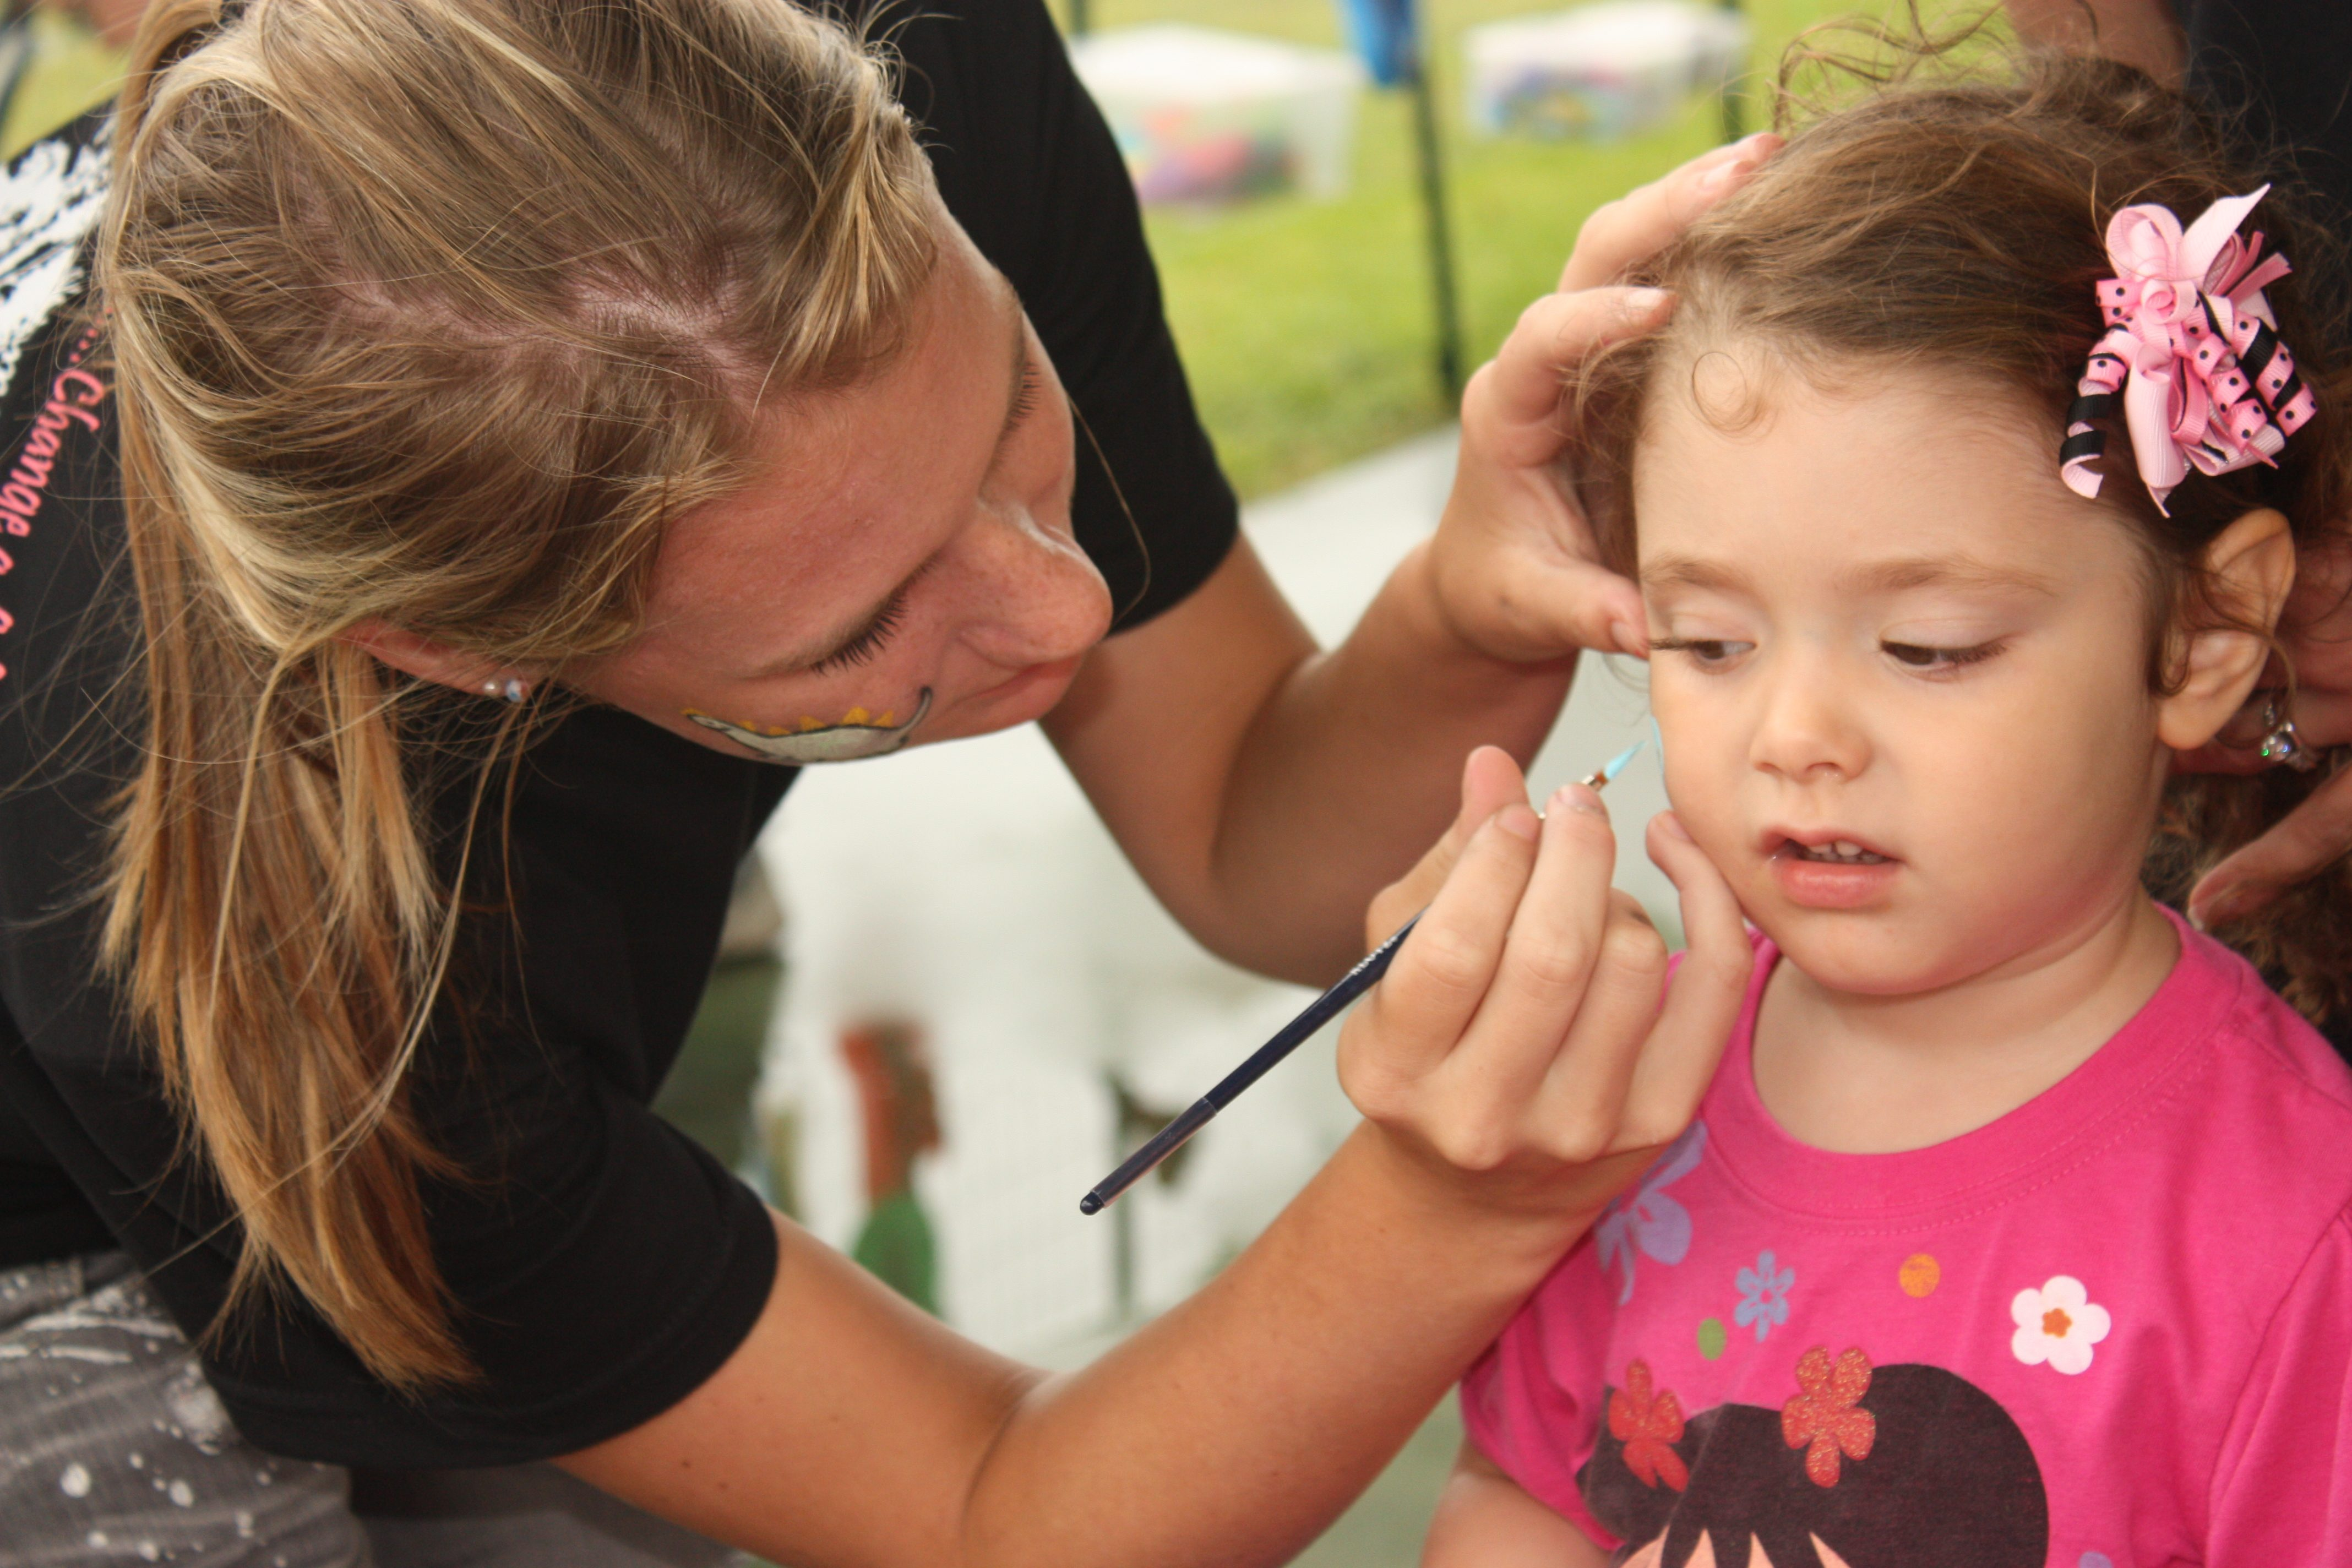 Face painting is one of many family activities to enjoy at the annual Haynie Spirit Festival and BBQ Fundraiser, which this year raised more than $8,000. Photo by Sydney Long, courtesy of the Haynie Spirit Bone Cancer Foundation.